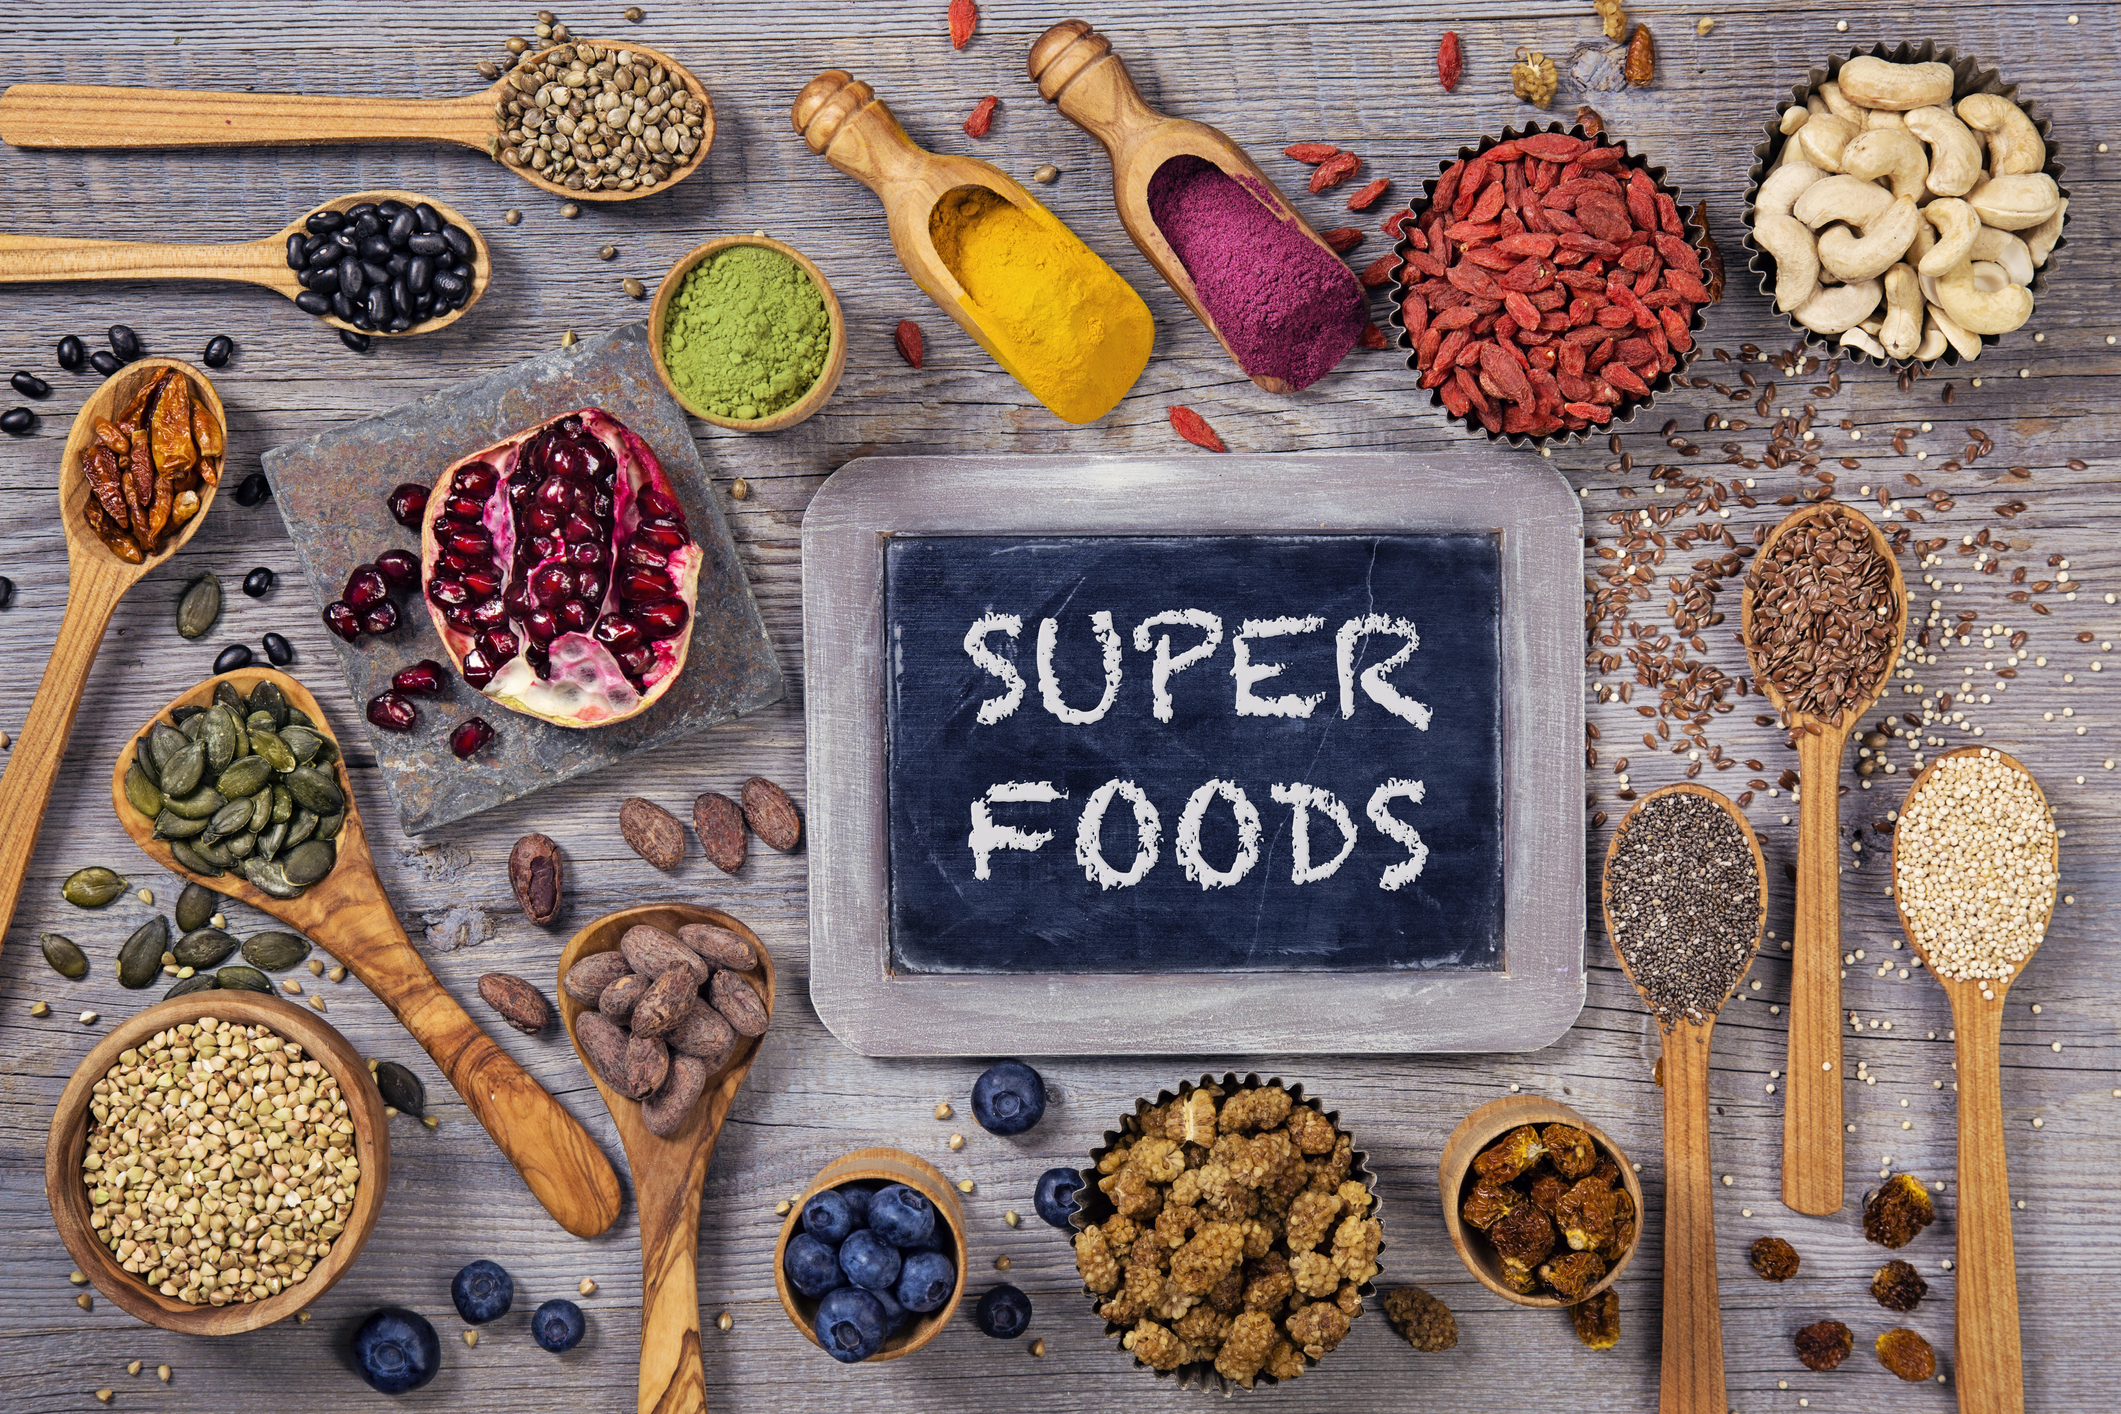 A Simple Guide to Superfoods